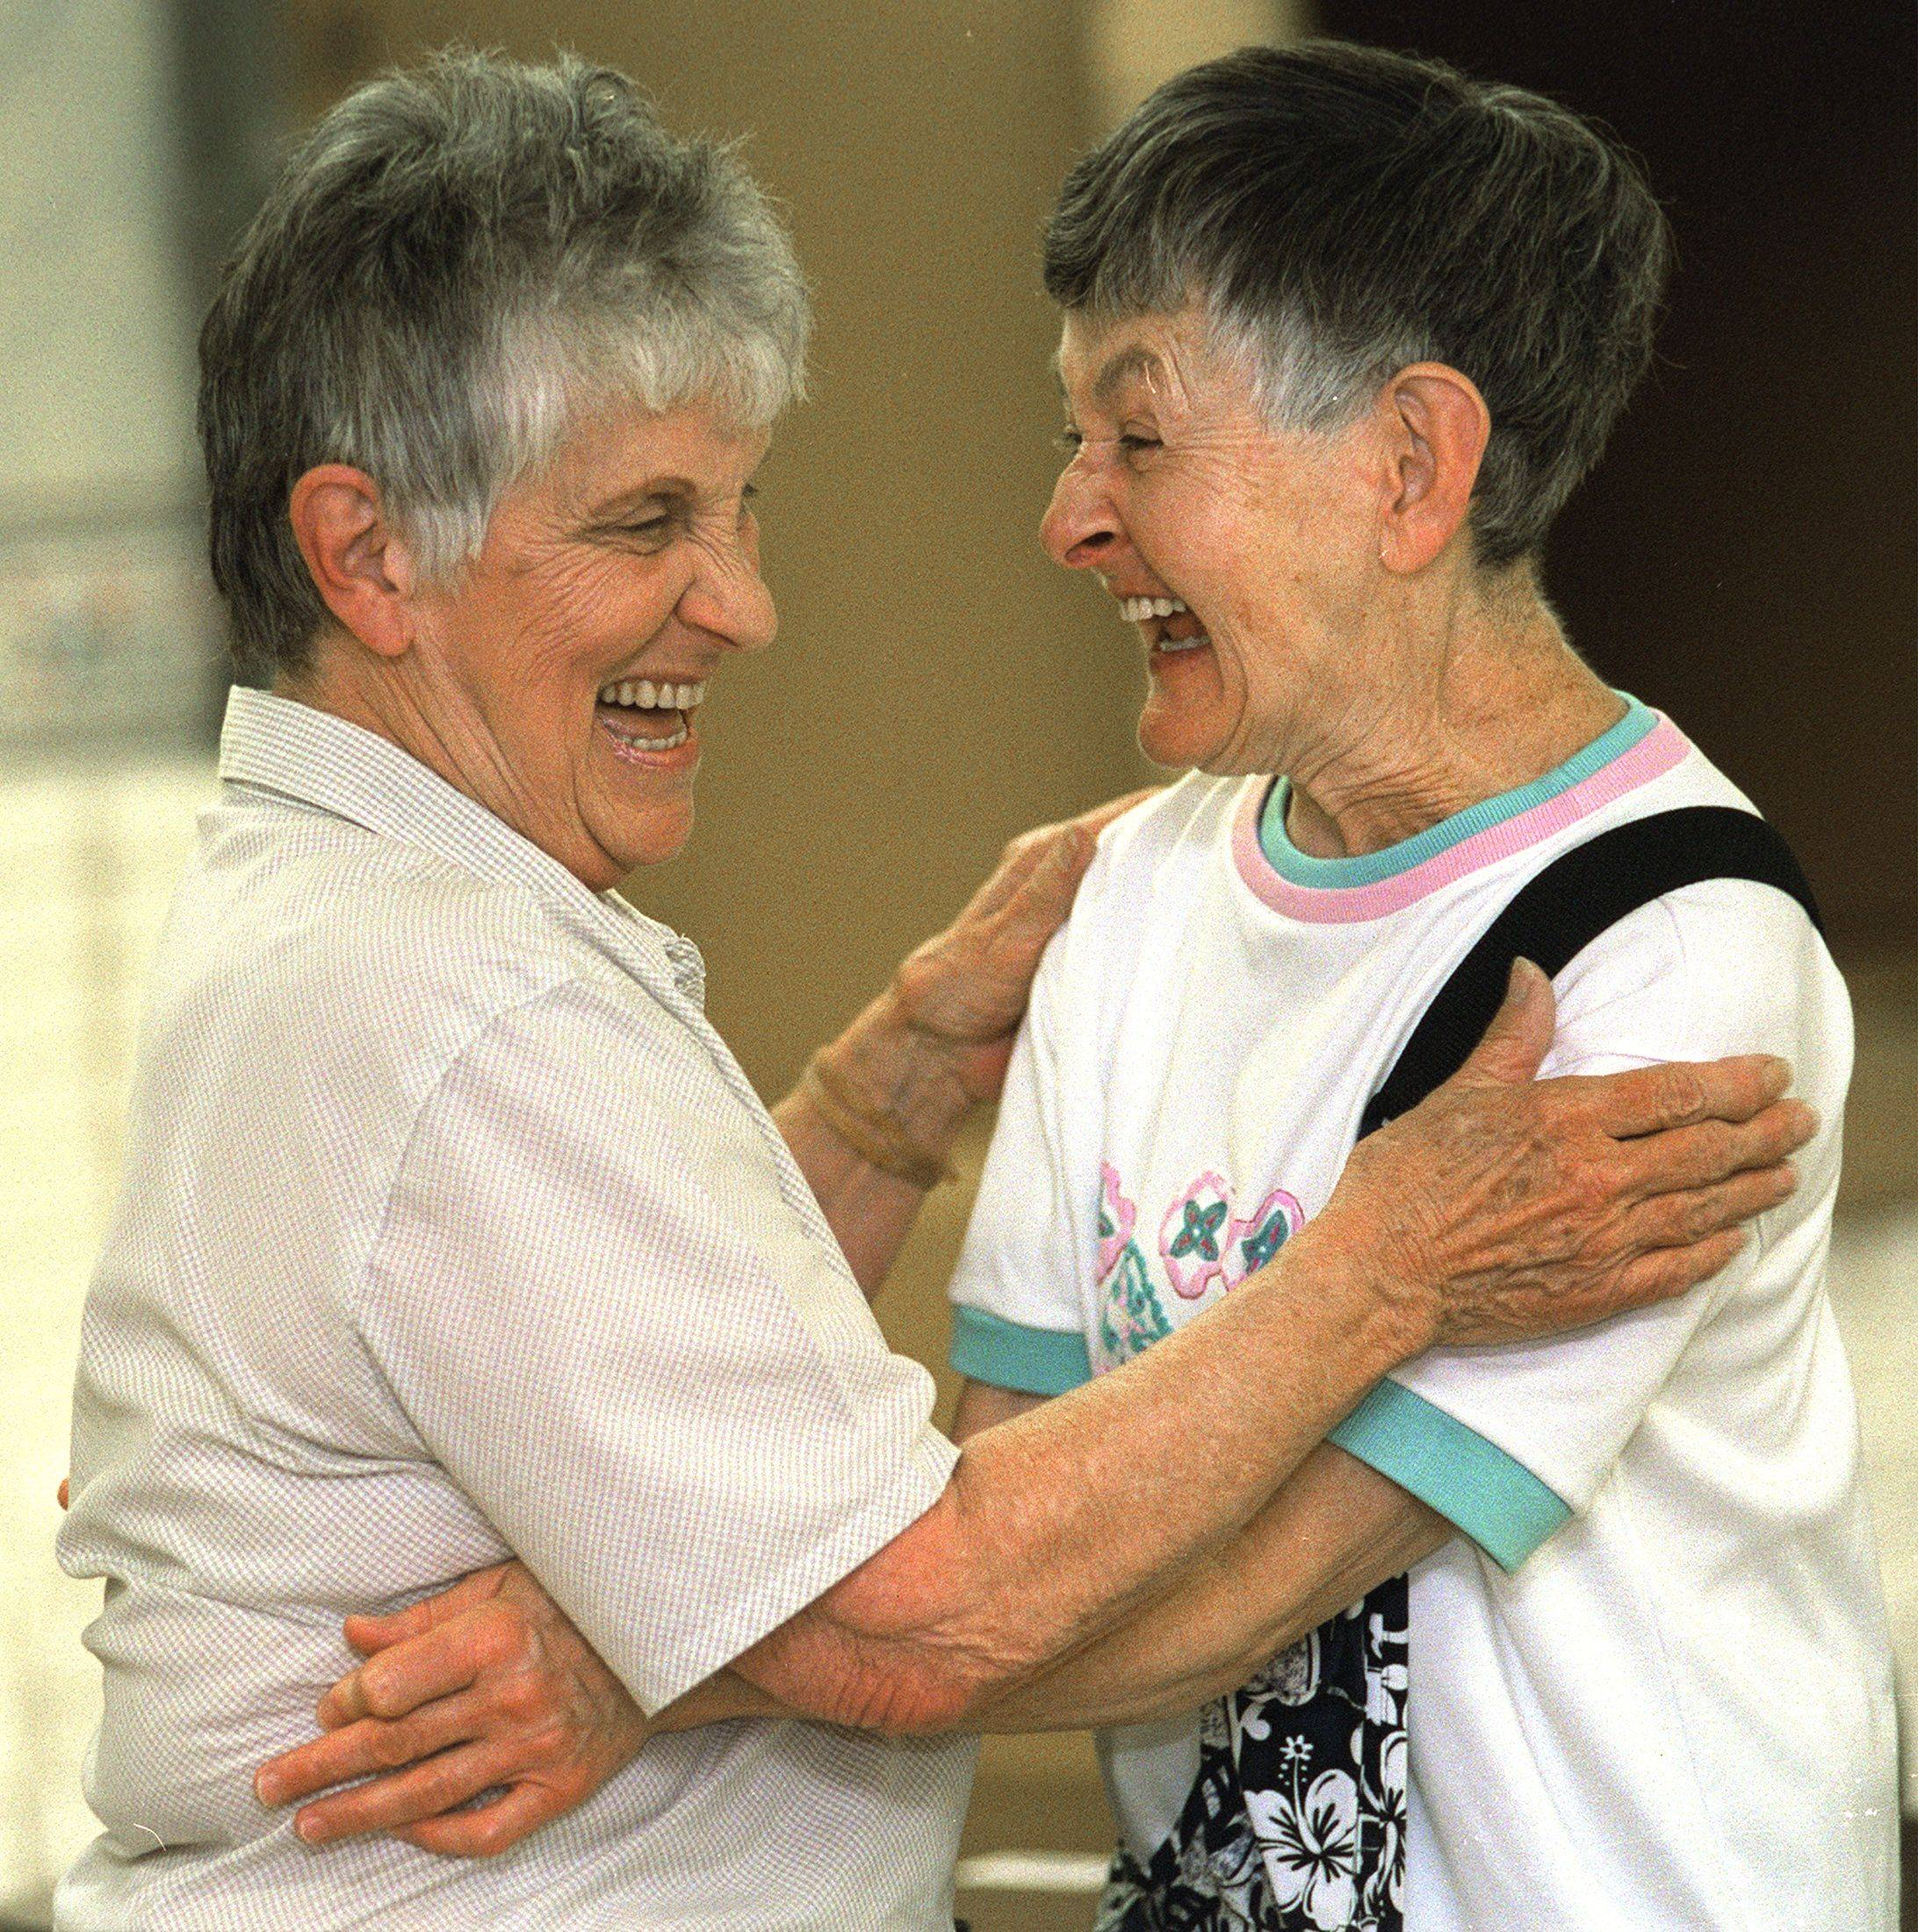 "In this file photo, Donna Crook, also known as ""Grandma, and Margie Dennehy hug and greet each other at the start of a work day at the Valley Sheltered Workshop in Batavia. Crook's illness and death was very sad for workers and supervisors at the workshop."